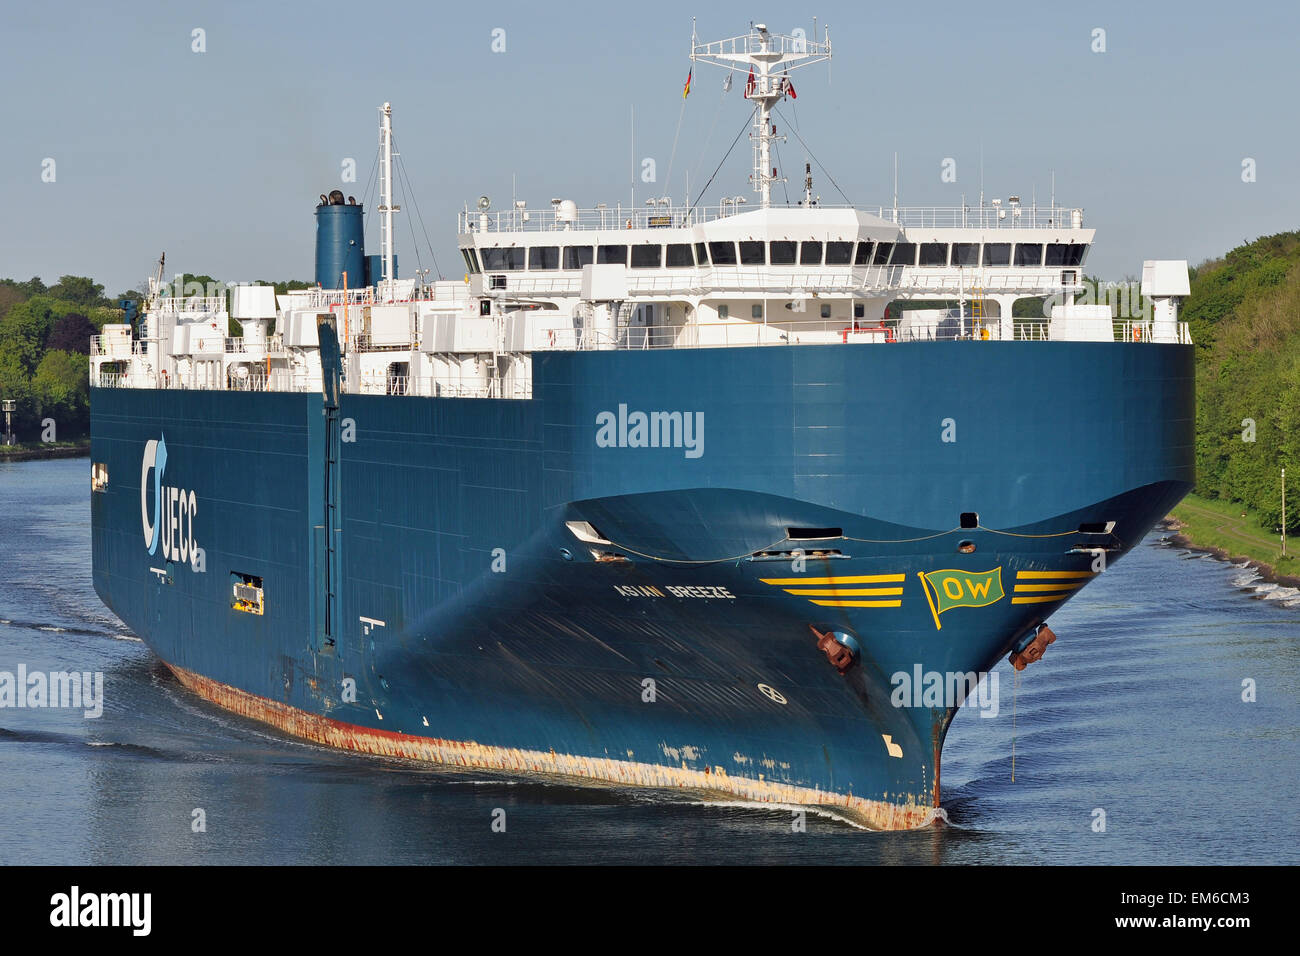 Carcarrier Asian Breeze - Stock Image